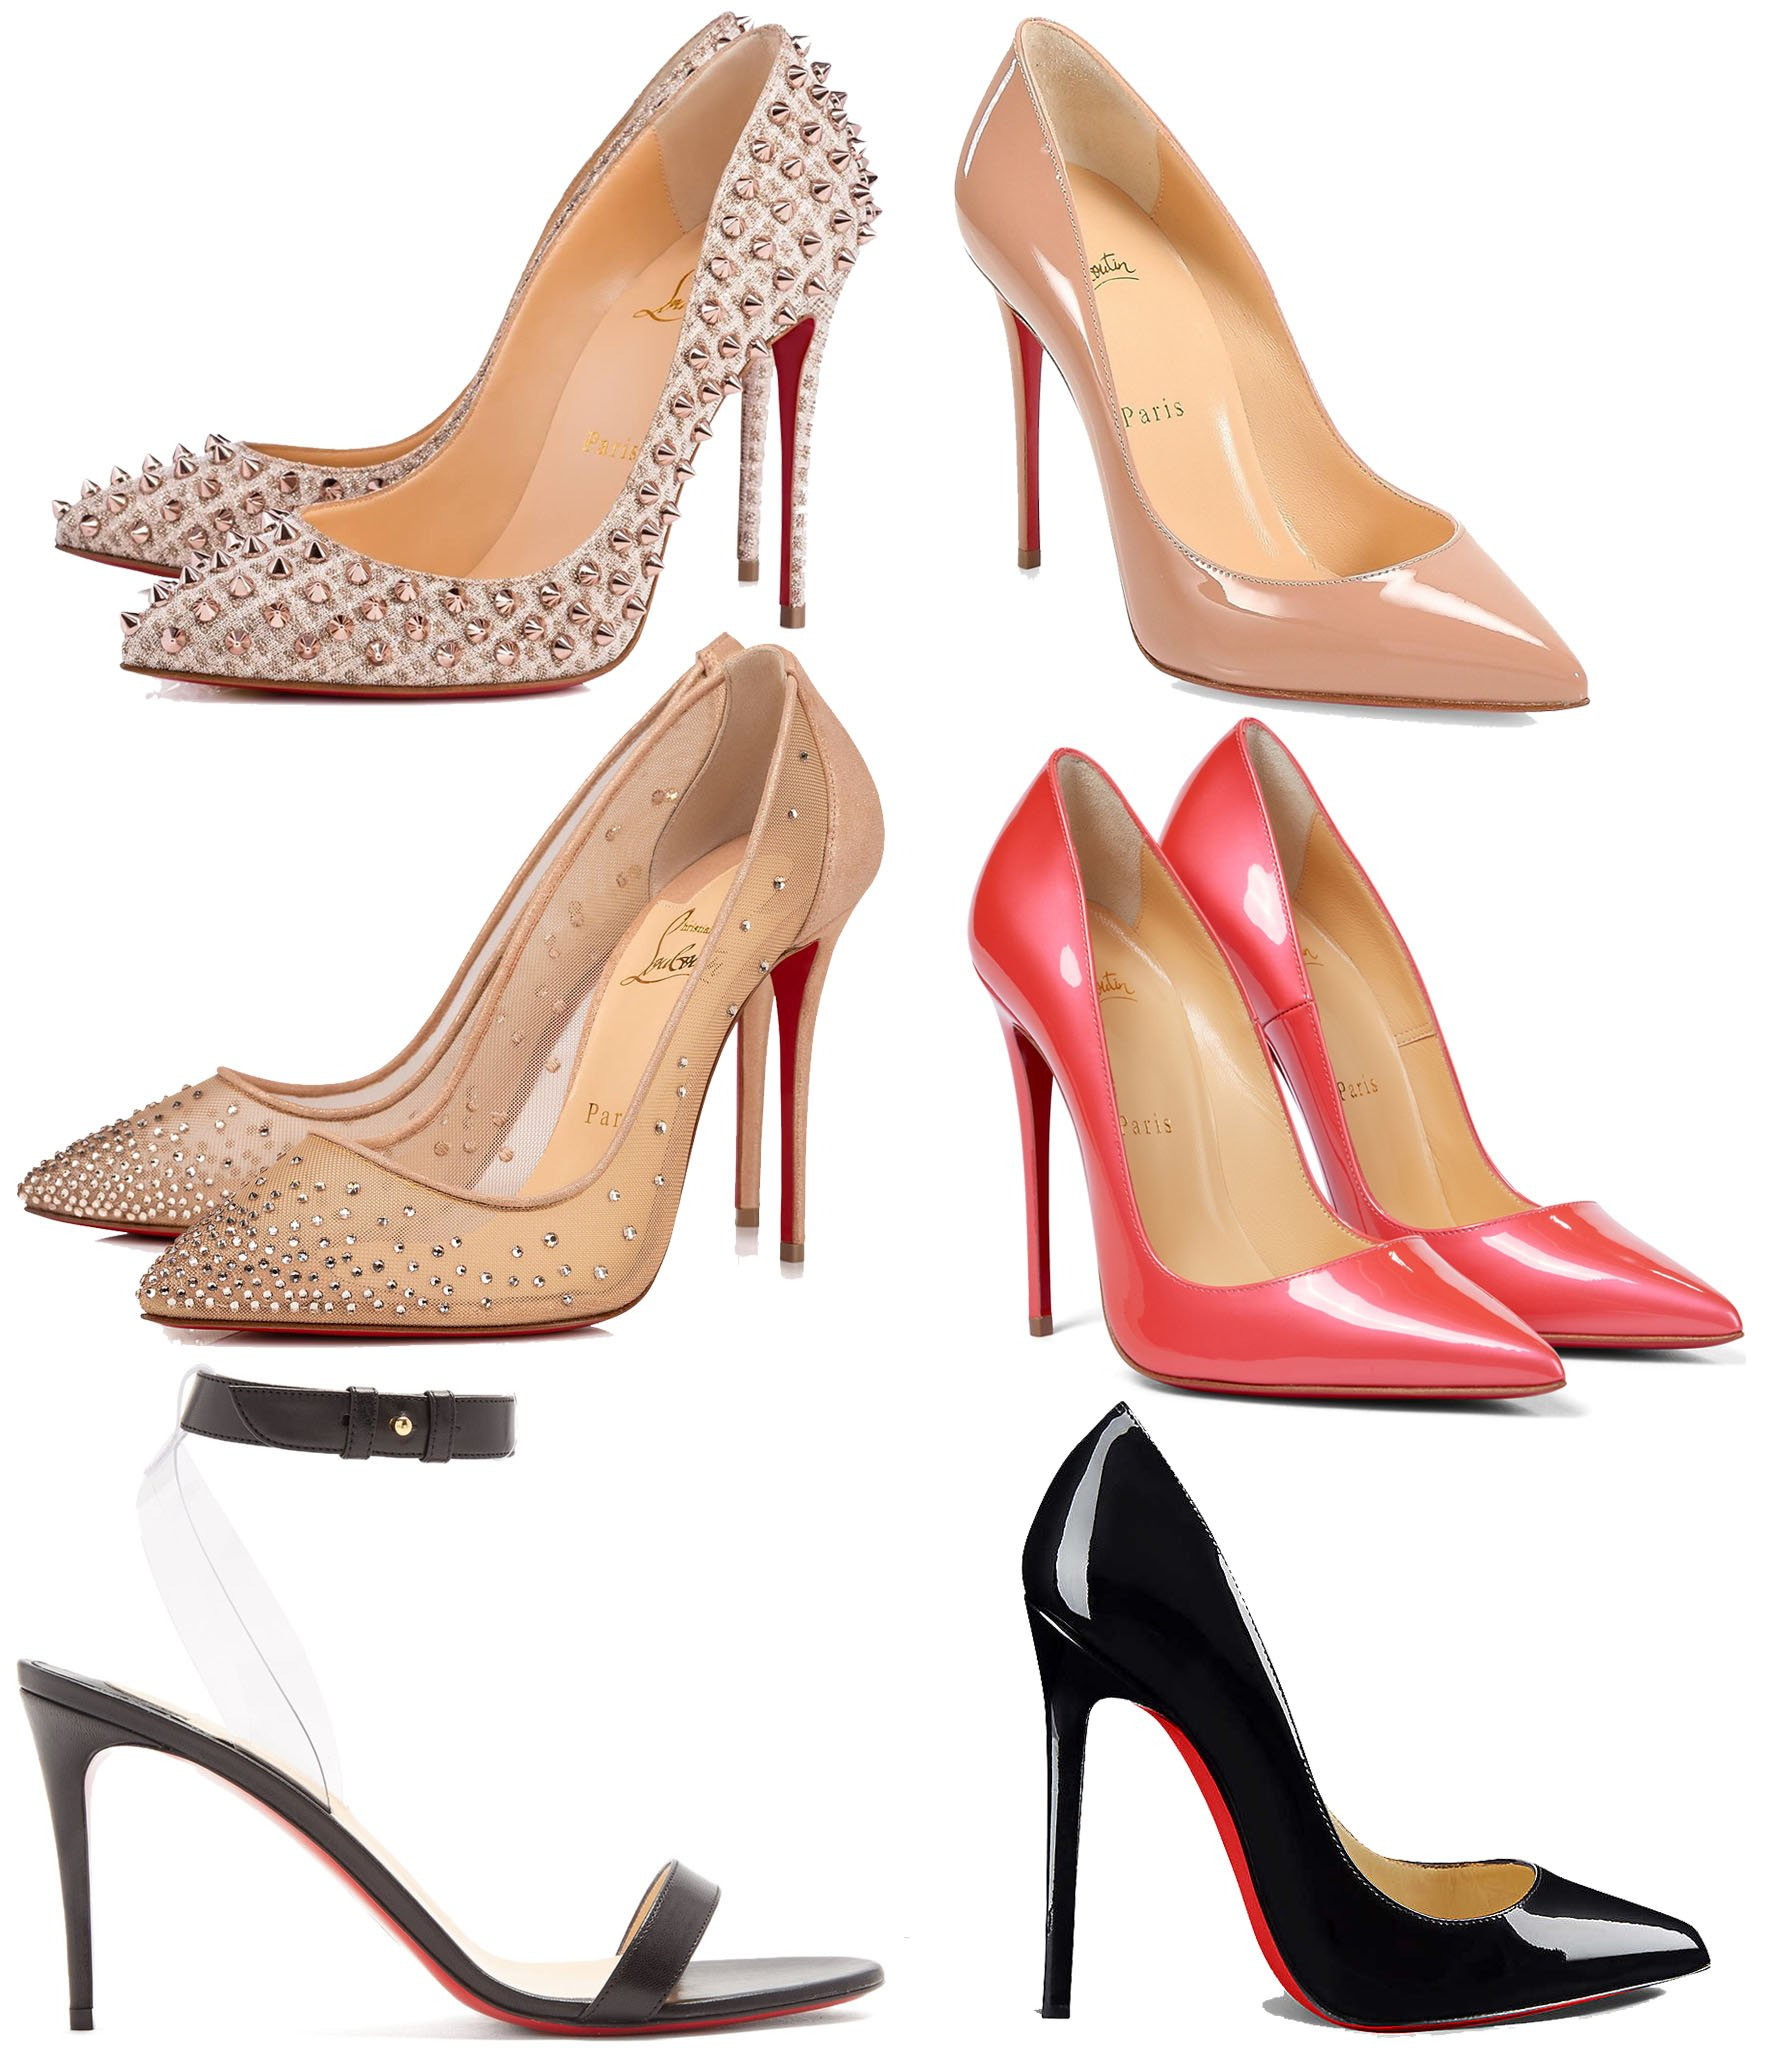 The Follies Spikes, Pigalle Follies, Follies Strass, So Kate, Jonatina, and Pigalle are some of Christian Louboutin's most popular shoe styles